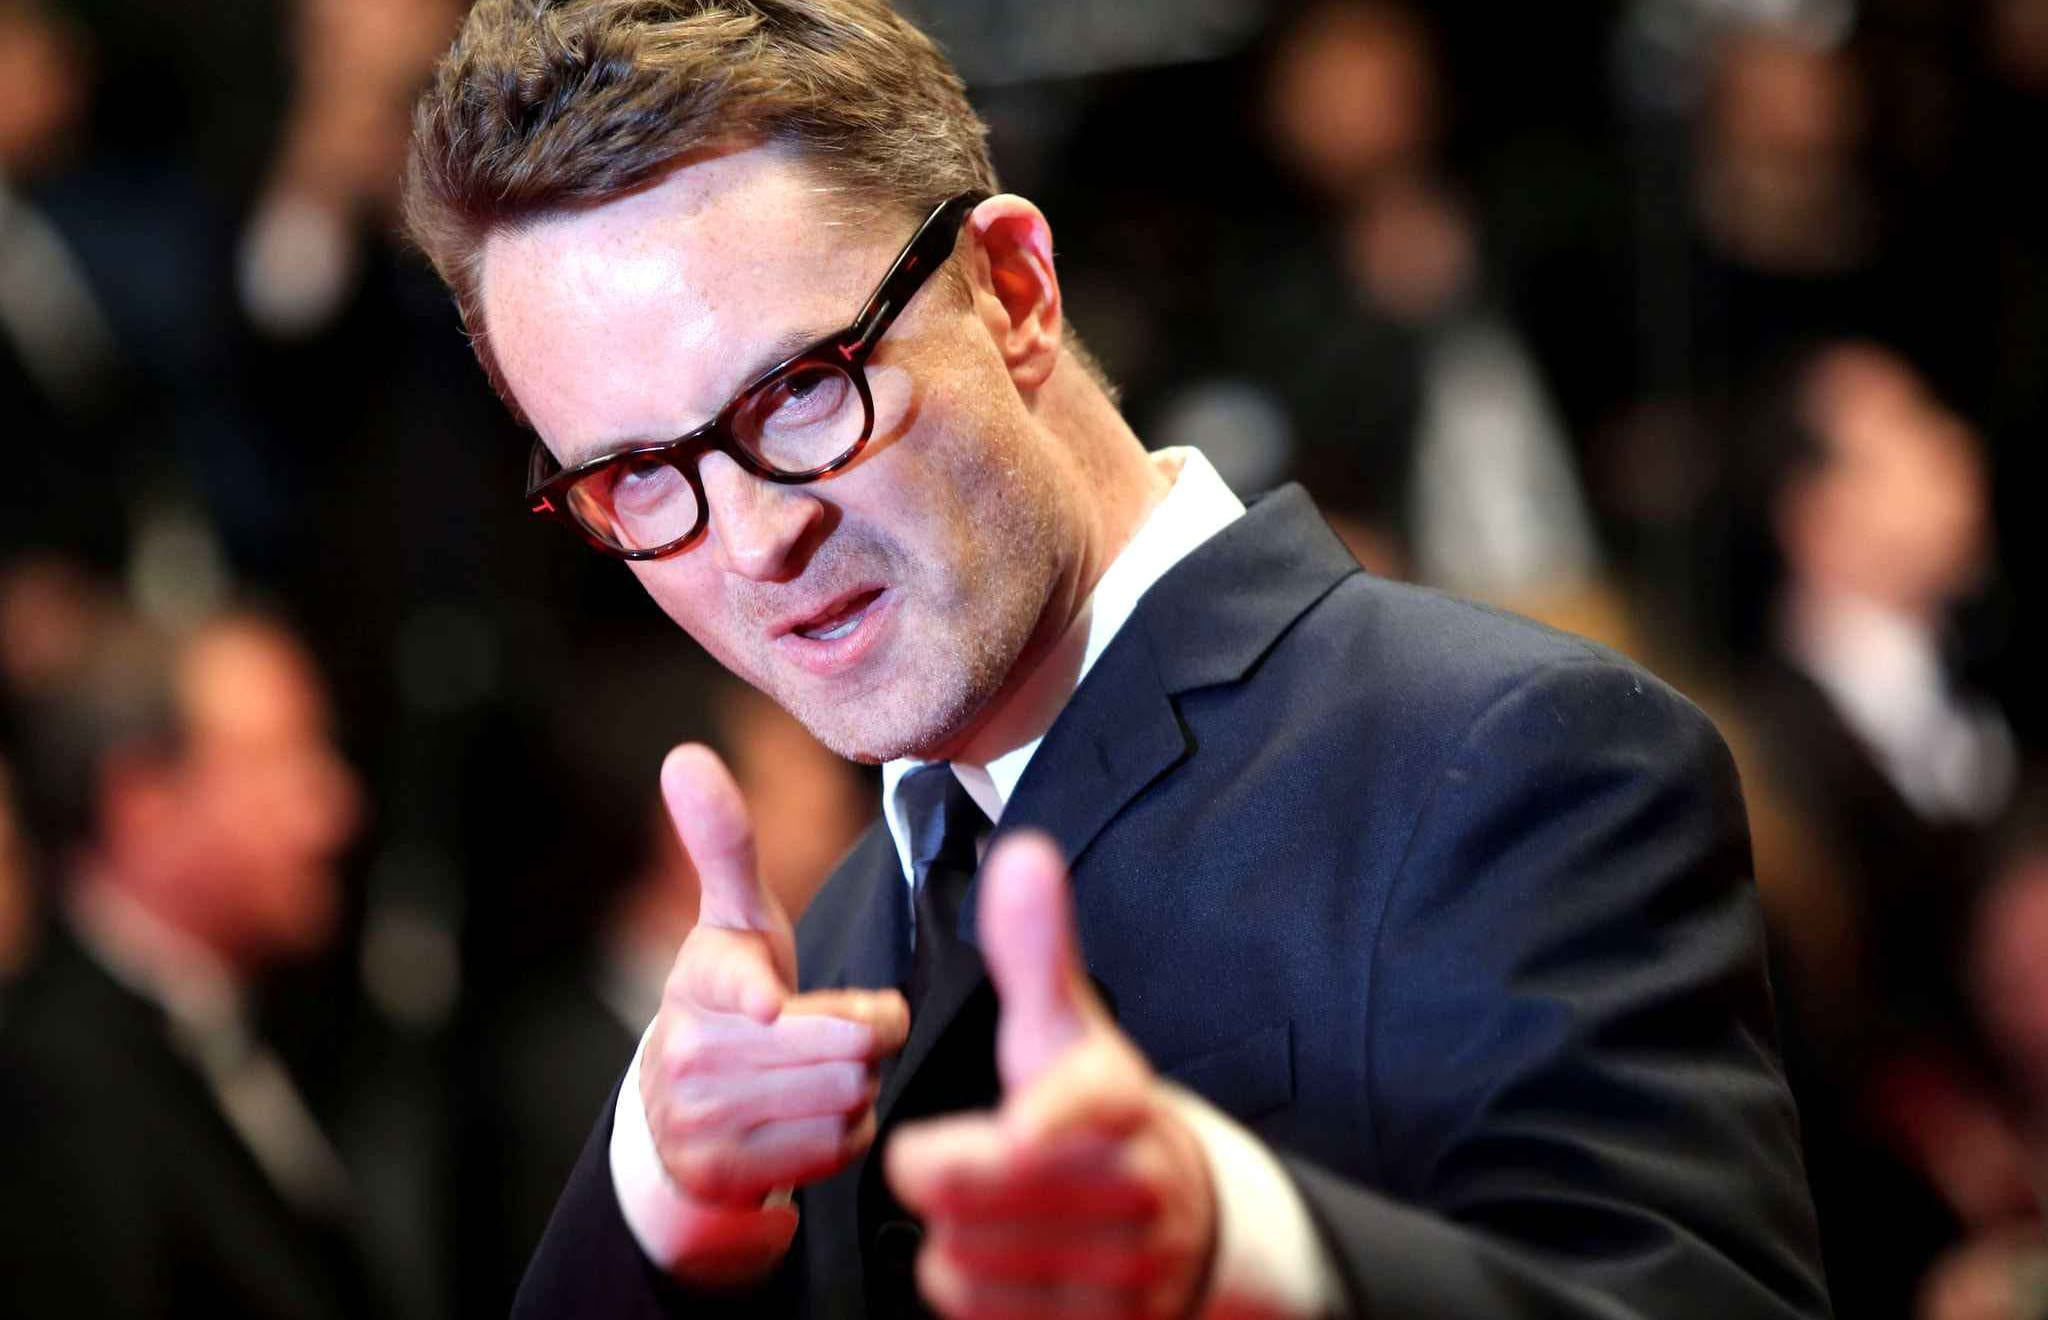 """Nicolas Winding Refn has announced he'll be starting his own streaming service, complete with films, film education videos, and """"artistic video content""""."""